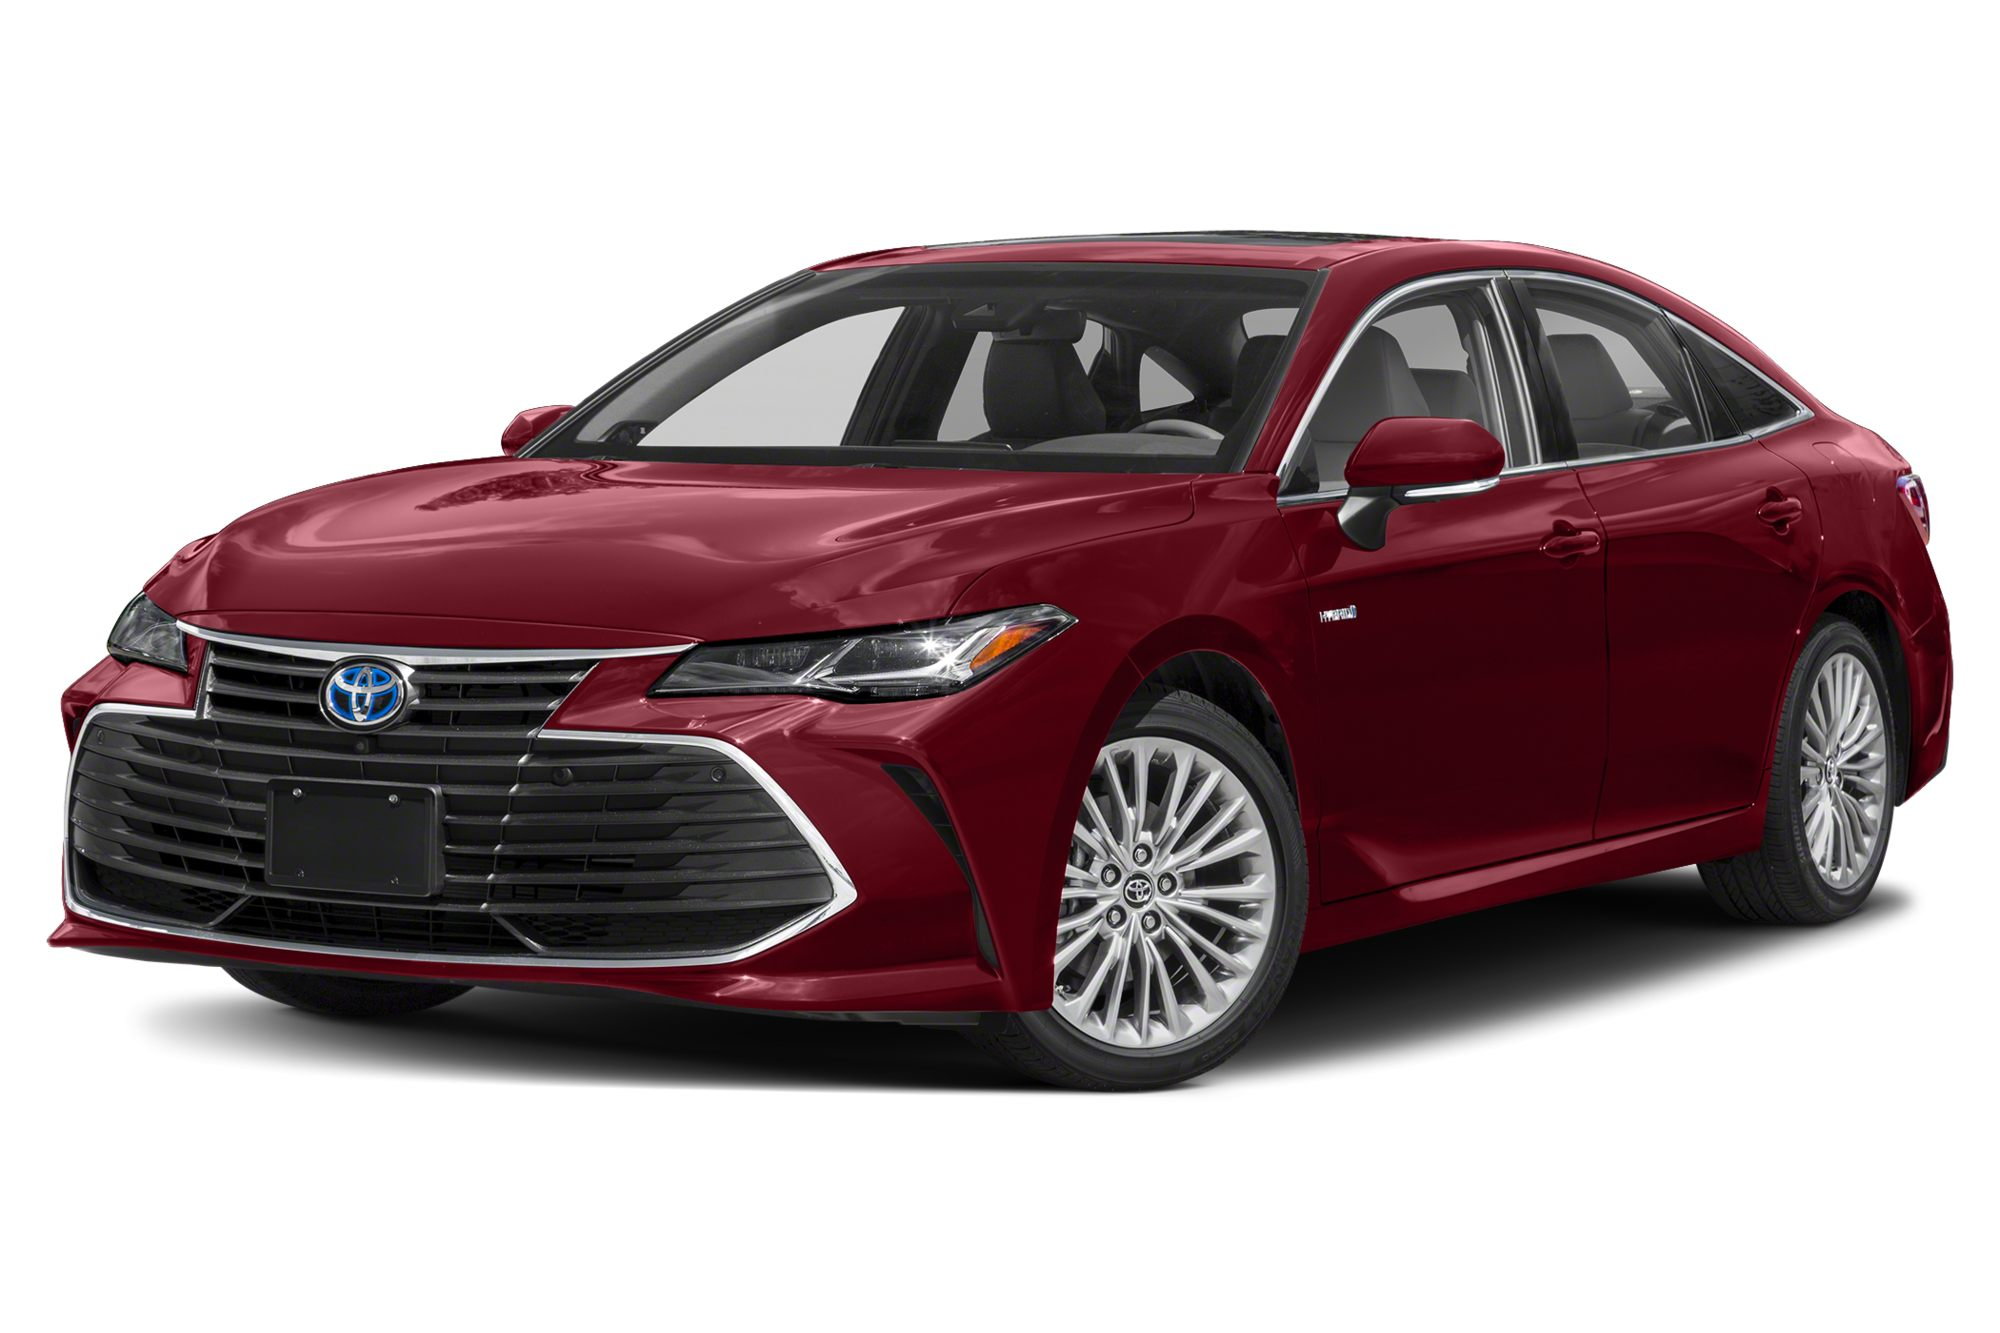 44,000 2019-20 Lexus and Toyota Cars and SUVs: Recall Alert